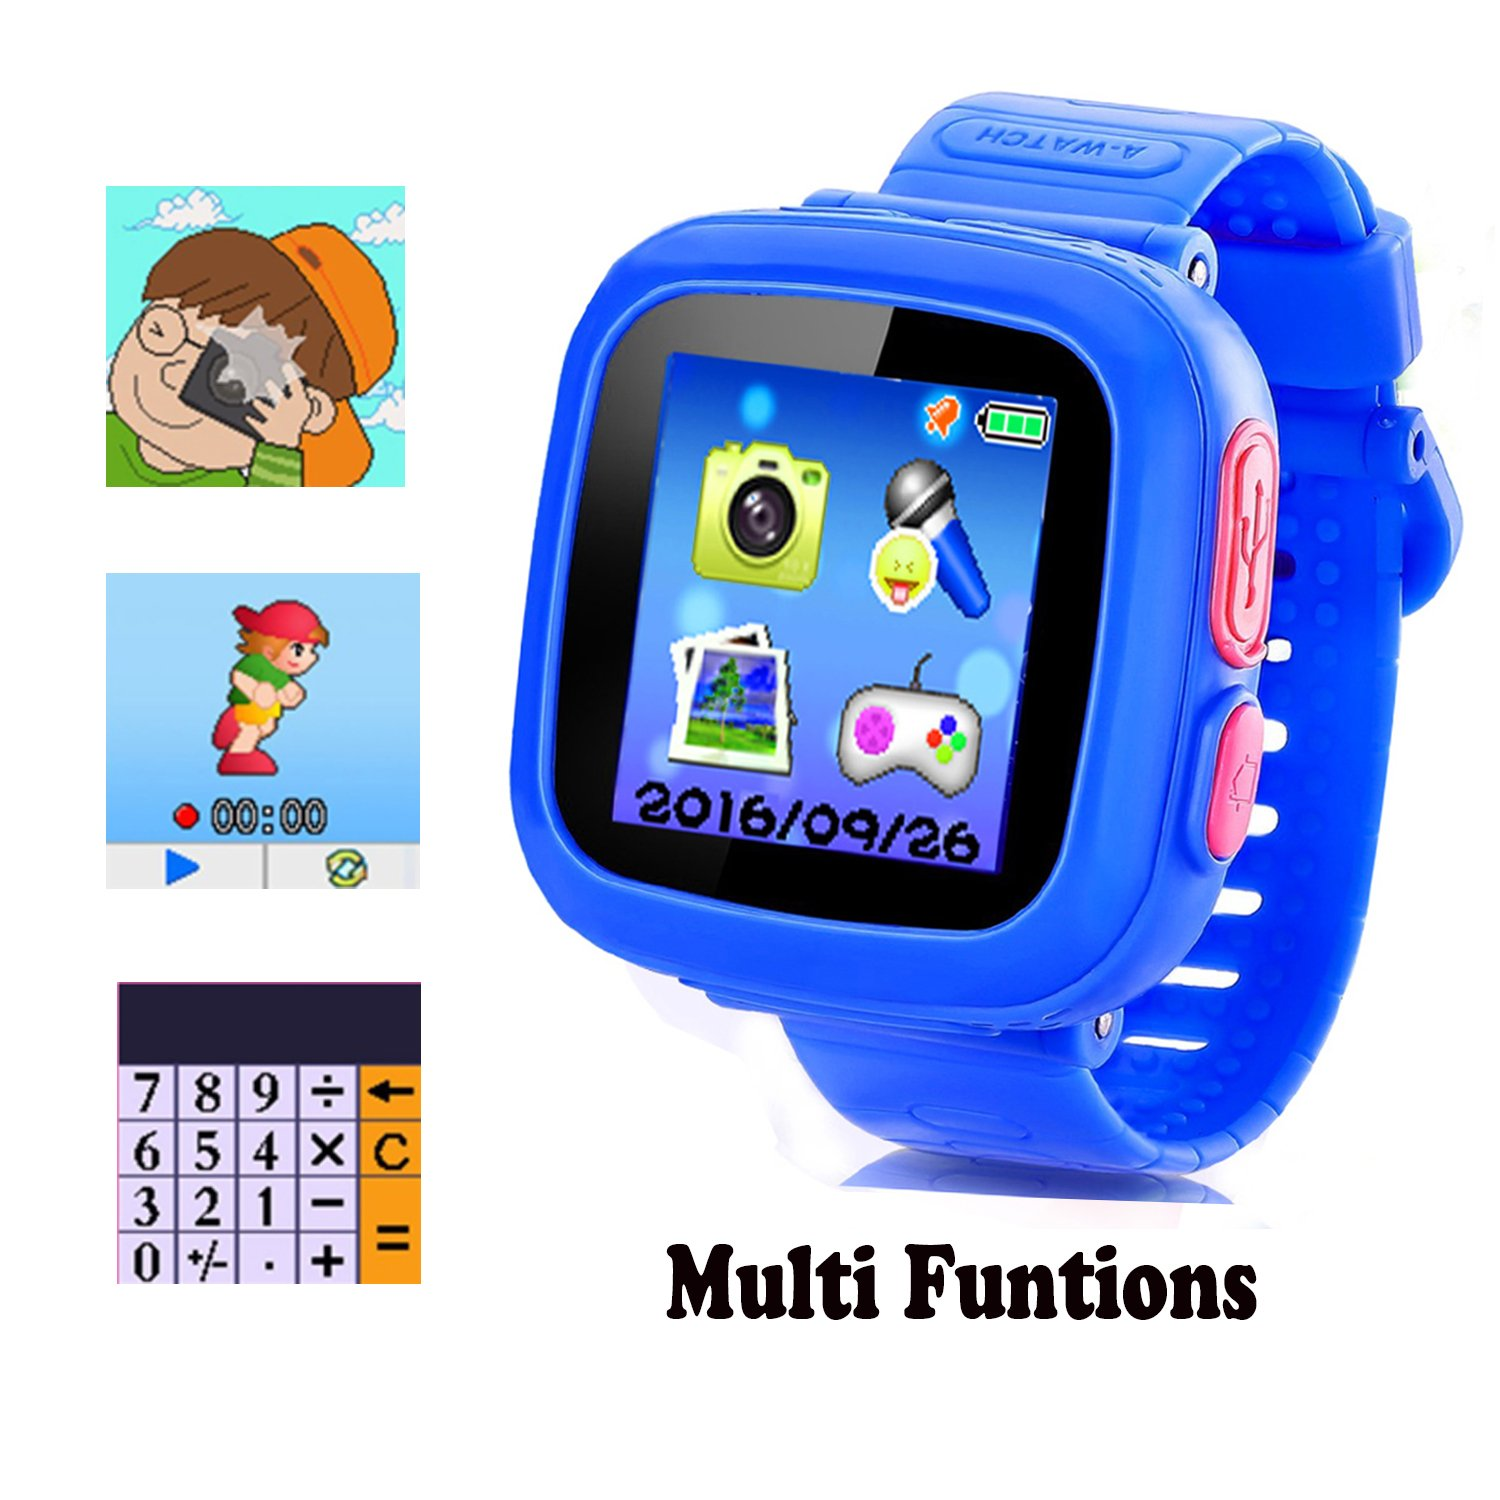 MIMLI Smart Watch for Kids Girls Boys,Smart Game Watch with Camera Touch Screen Pedometer,Kids Smart Watch Perfect Holiday Birthday Toys Gifts (Dark Blue) by MIMLI (Image #1)